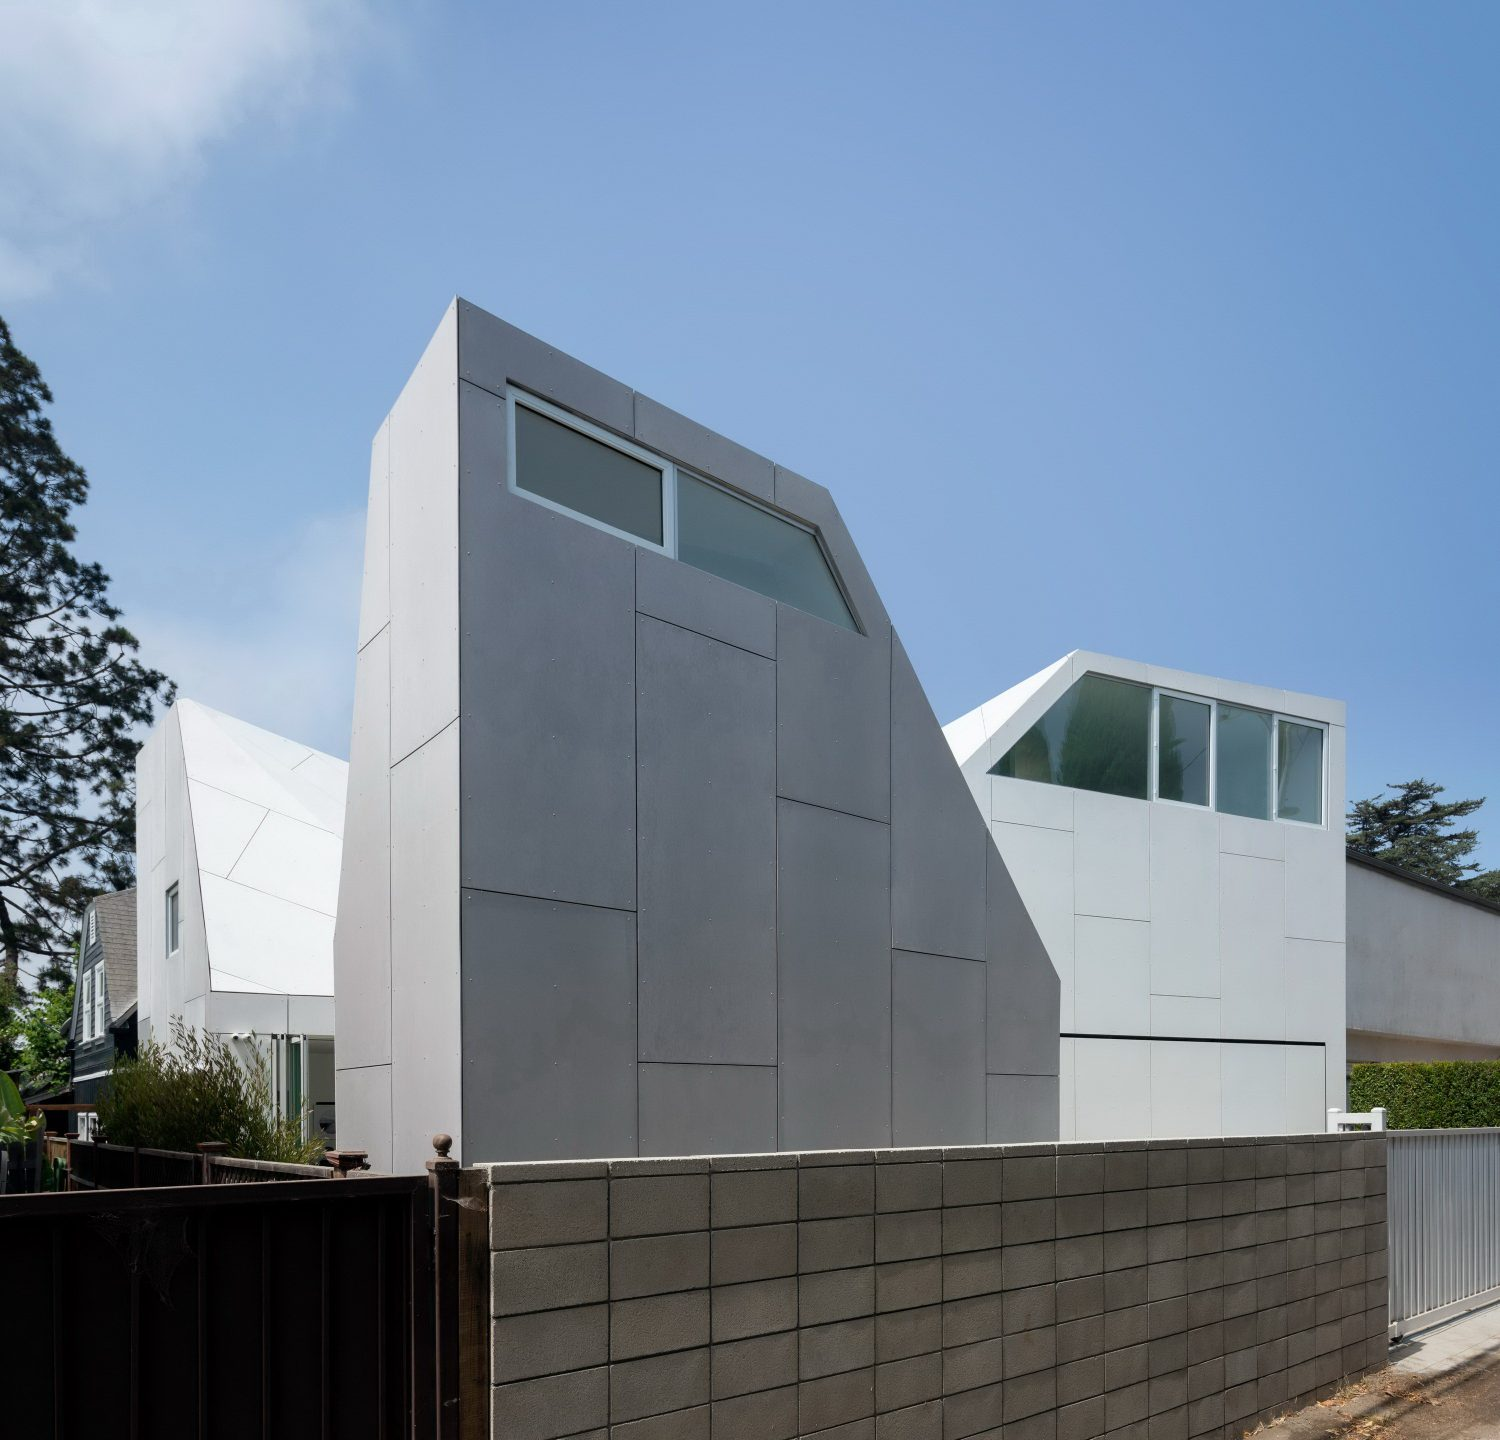 Second House – Home with Steeply Pitched Rooflines by FreelandBuck